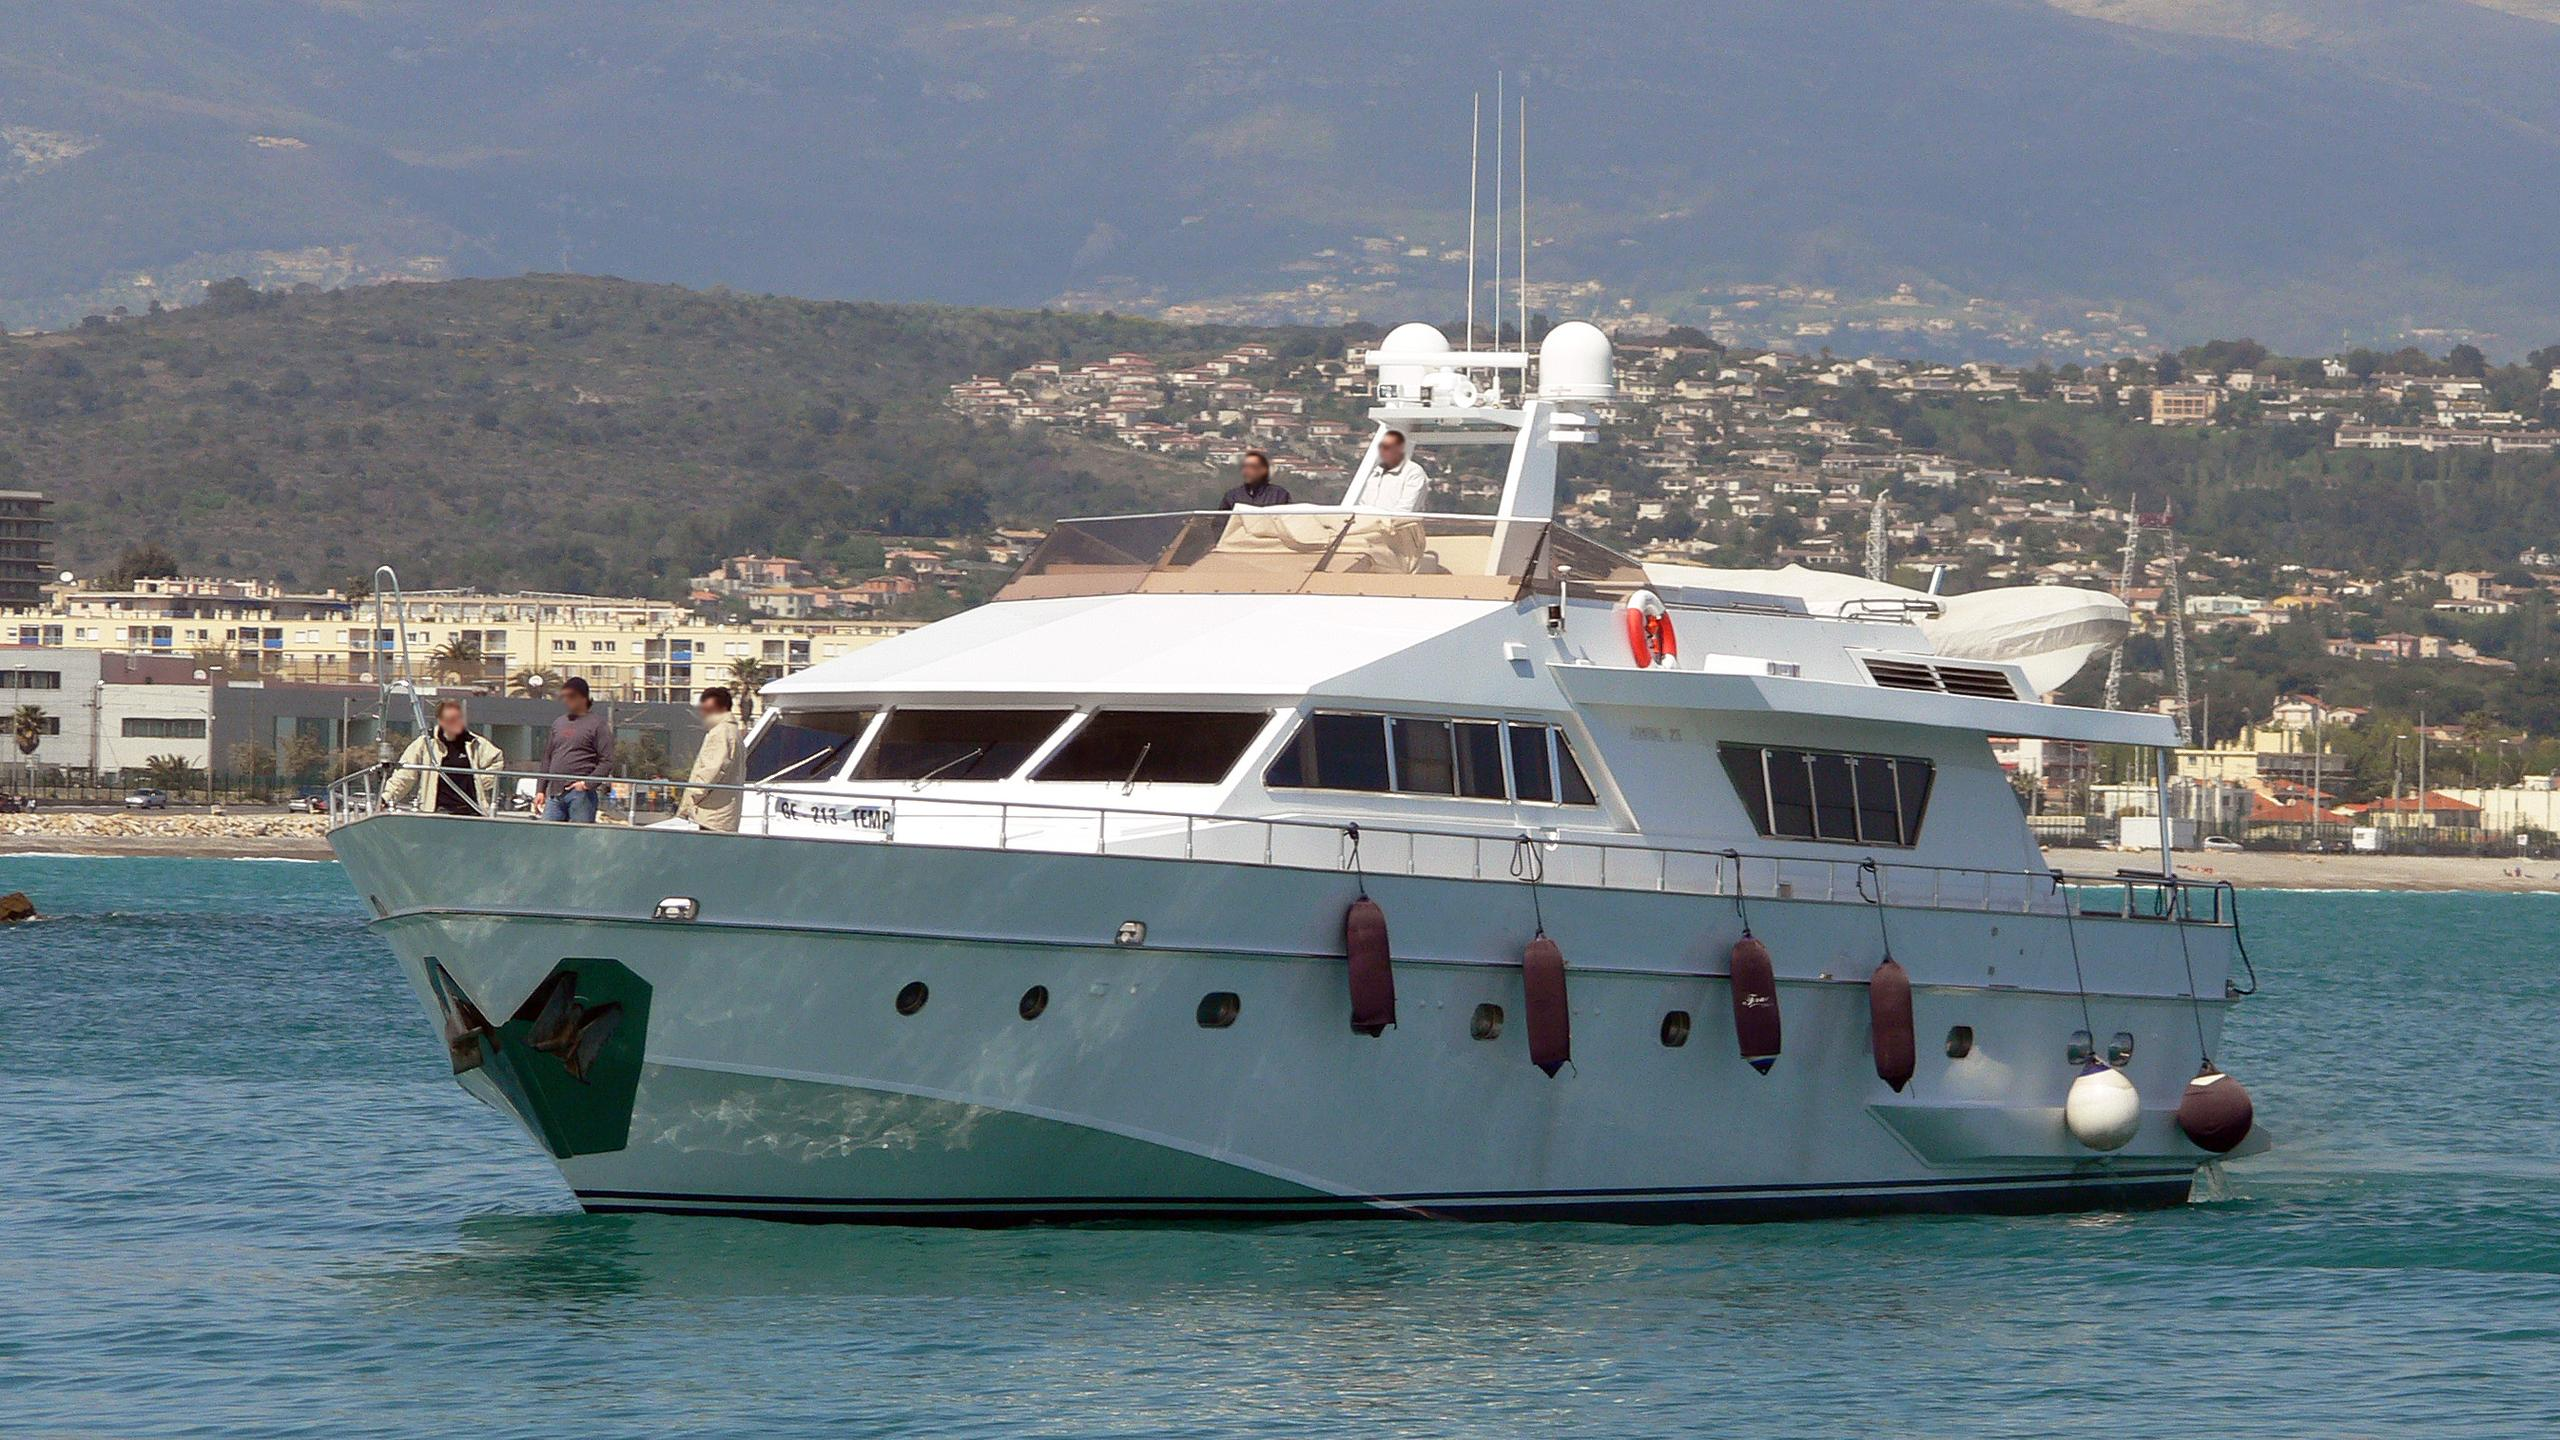 frac-motor-yacht-cnl-admiral-25-1978-26m-front-profile